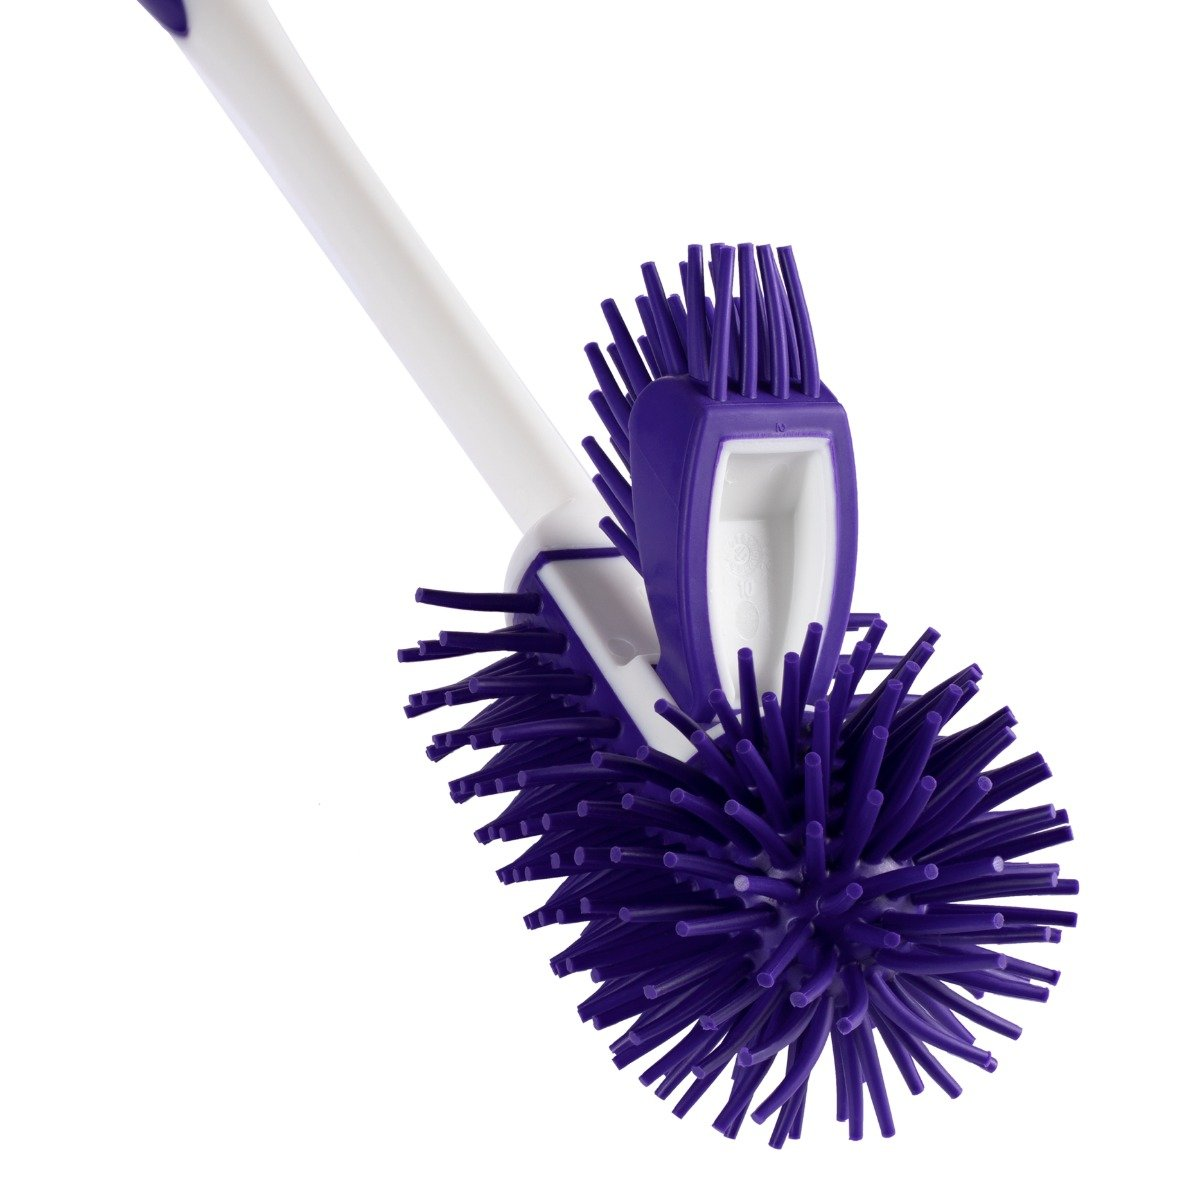 Ultimate Toilet Bowl Brush Constructed of Durable ThermoPlastic Rubber (TPR)-Cleaning Brushes-Fuller Brush Company